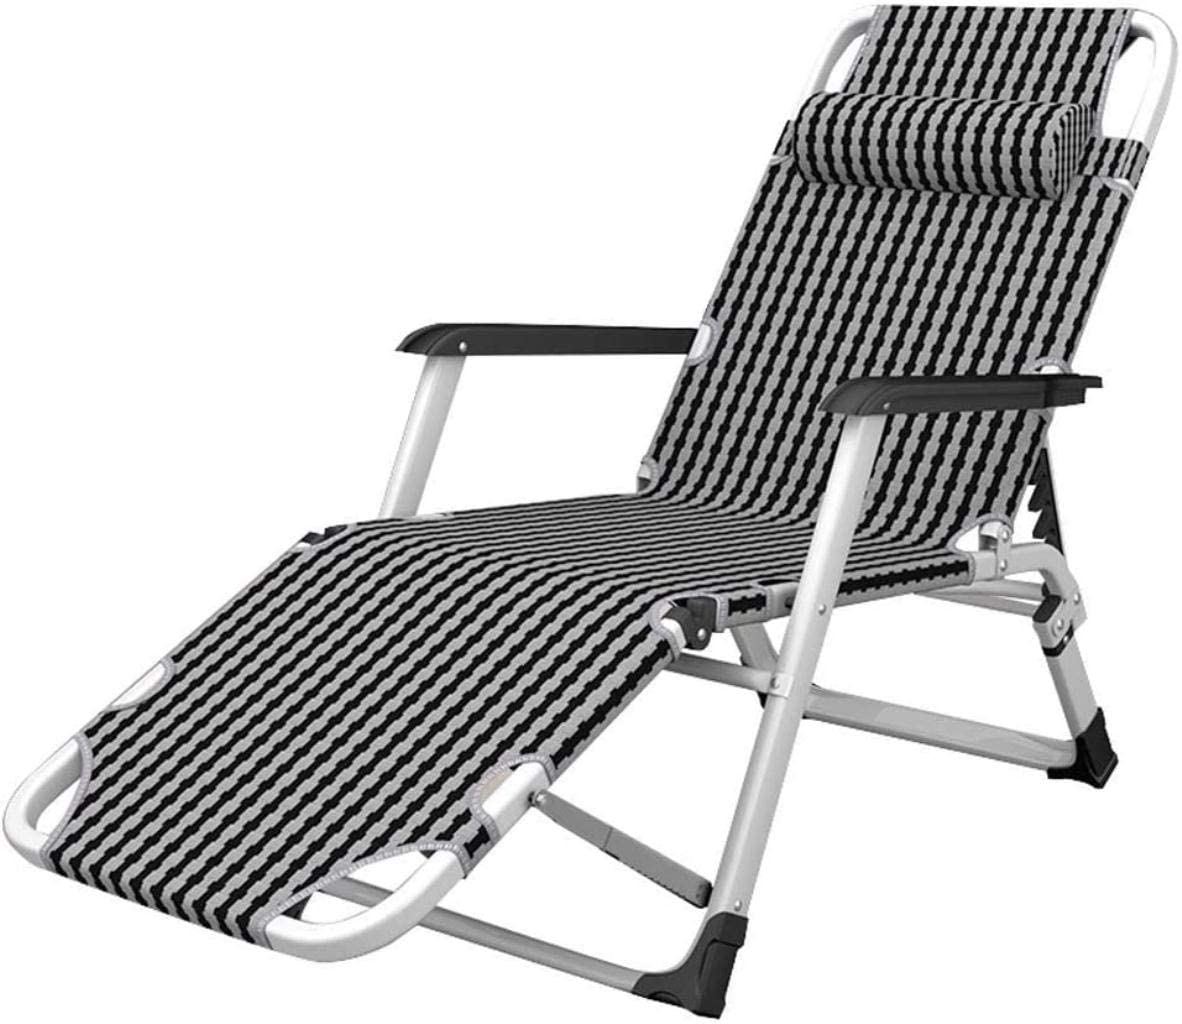 DIMPLEYA Extra Wide Sun Loungers Recliners Folding Reclining Garden Chair Fold Able Deck Chairs Sunbed for Child Adult Patio Pool Comfort Relaxer Chair